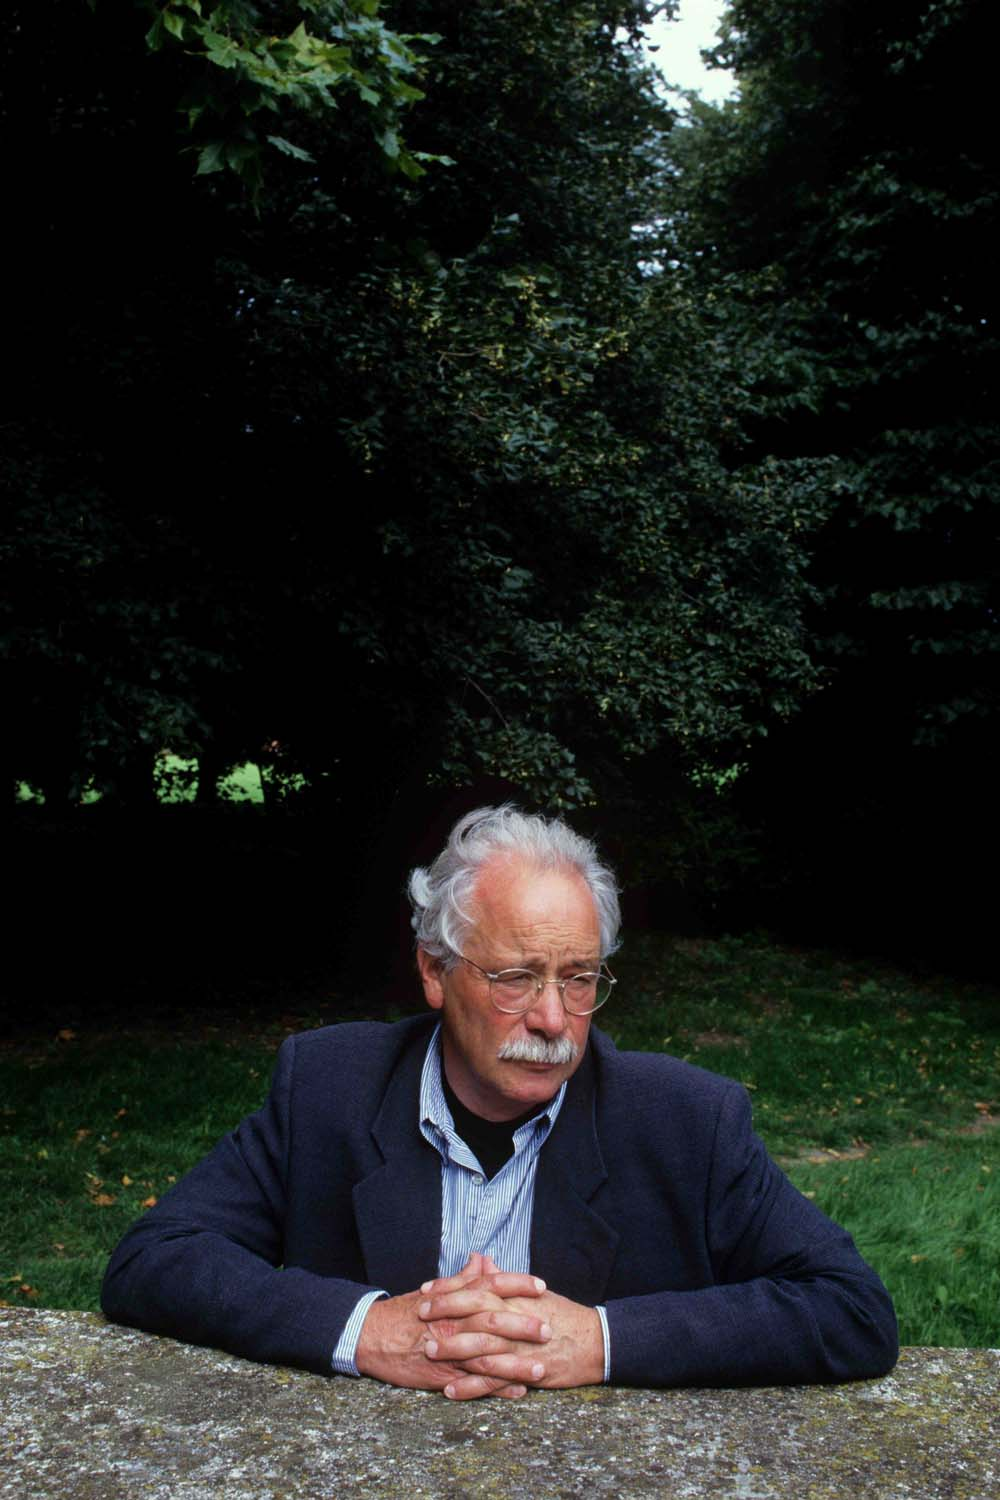 a photo of a tanned man with grey hair, glasses and moustache wearing a blazer and blue shirt with cravat seated outside